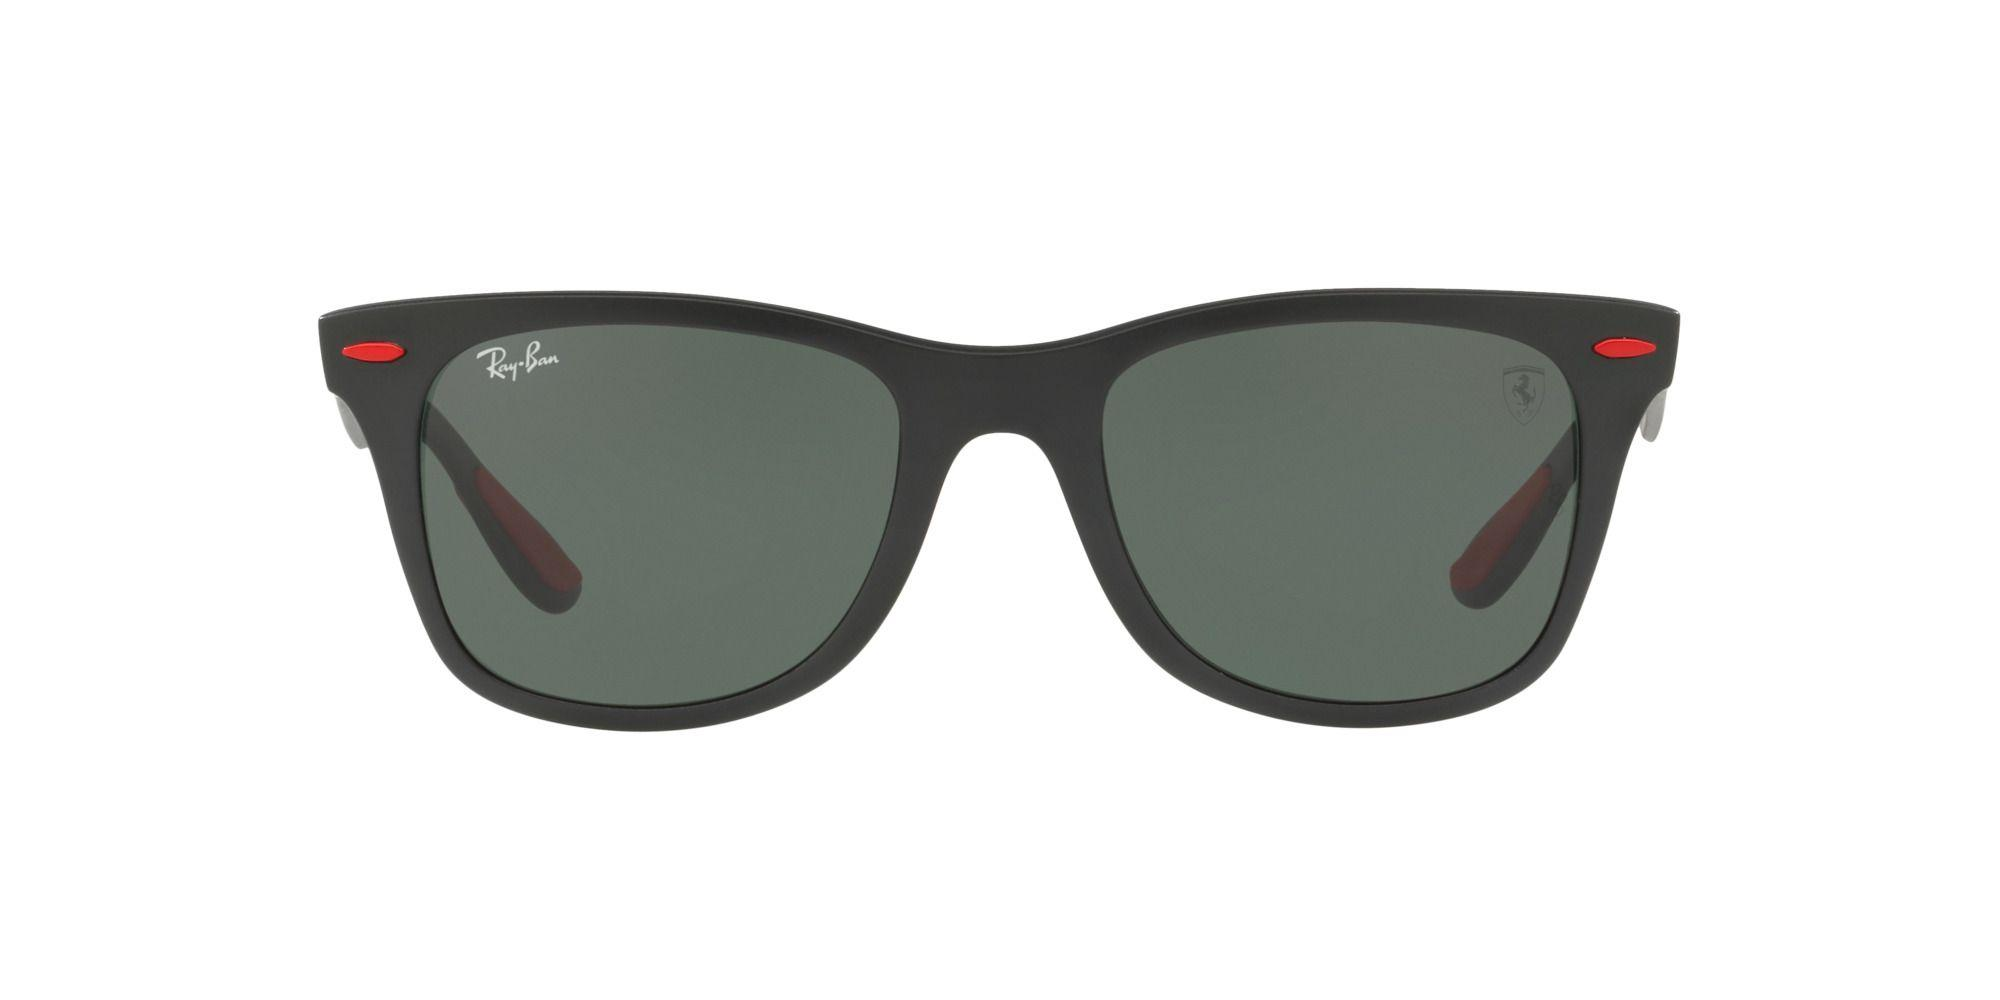 Ray-Ban Rb4195m Square Sunglasses in Black for Men